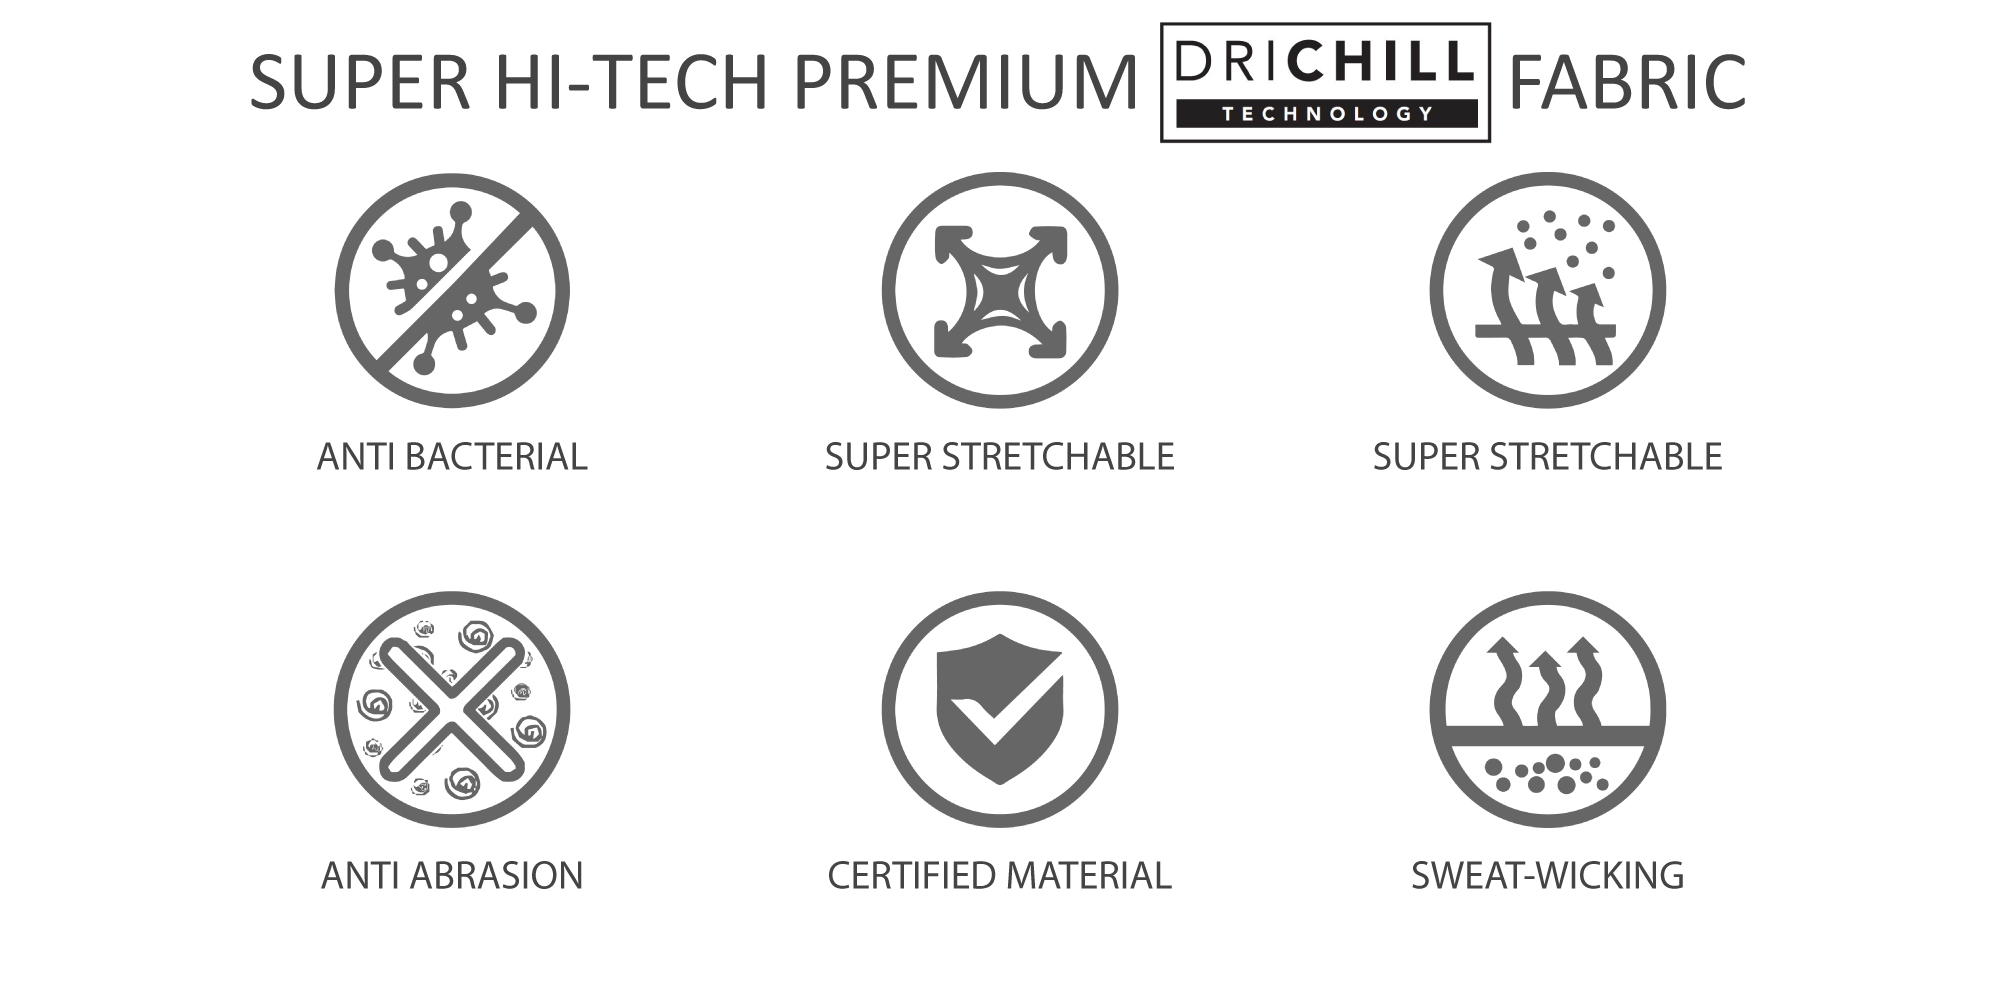 Drichill Technology